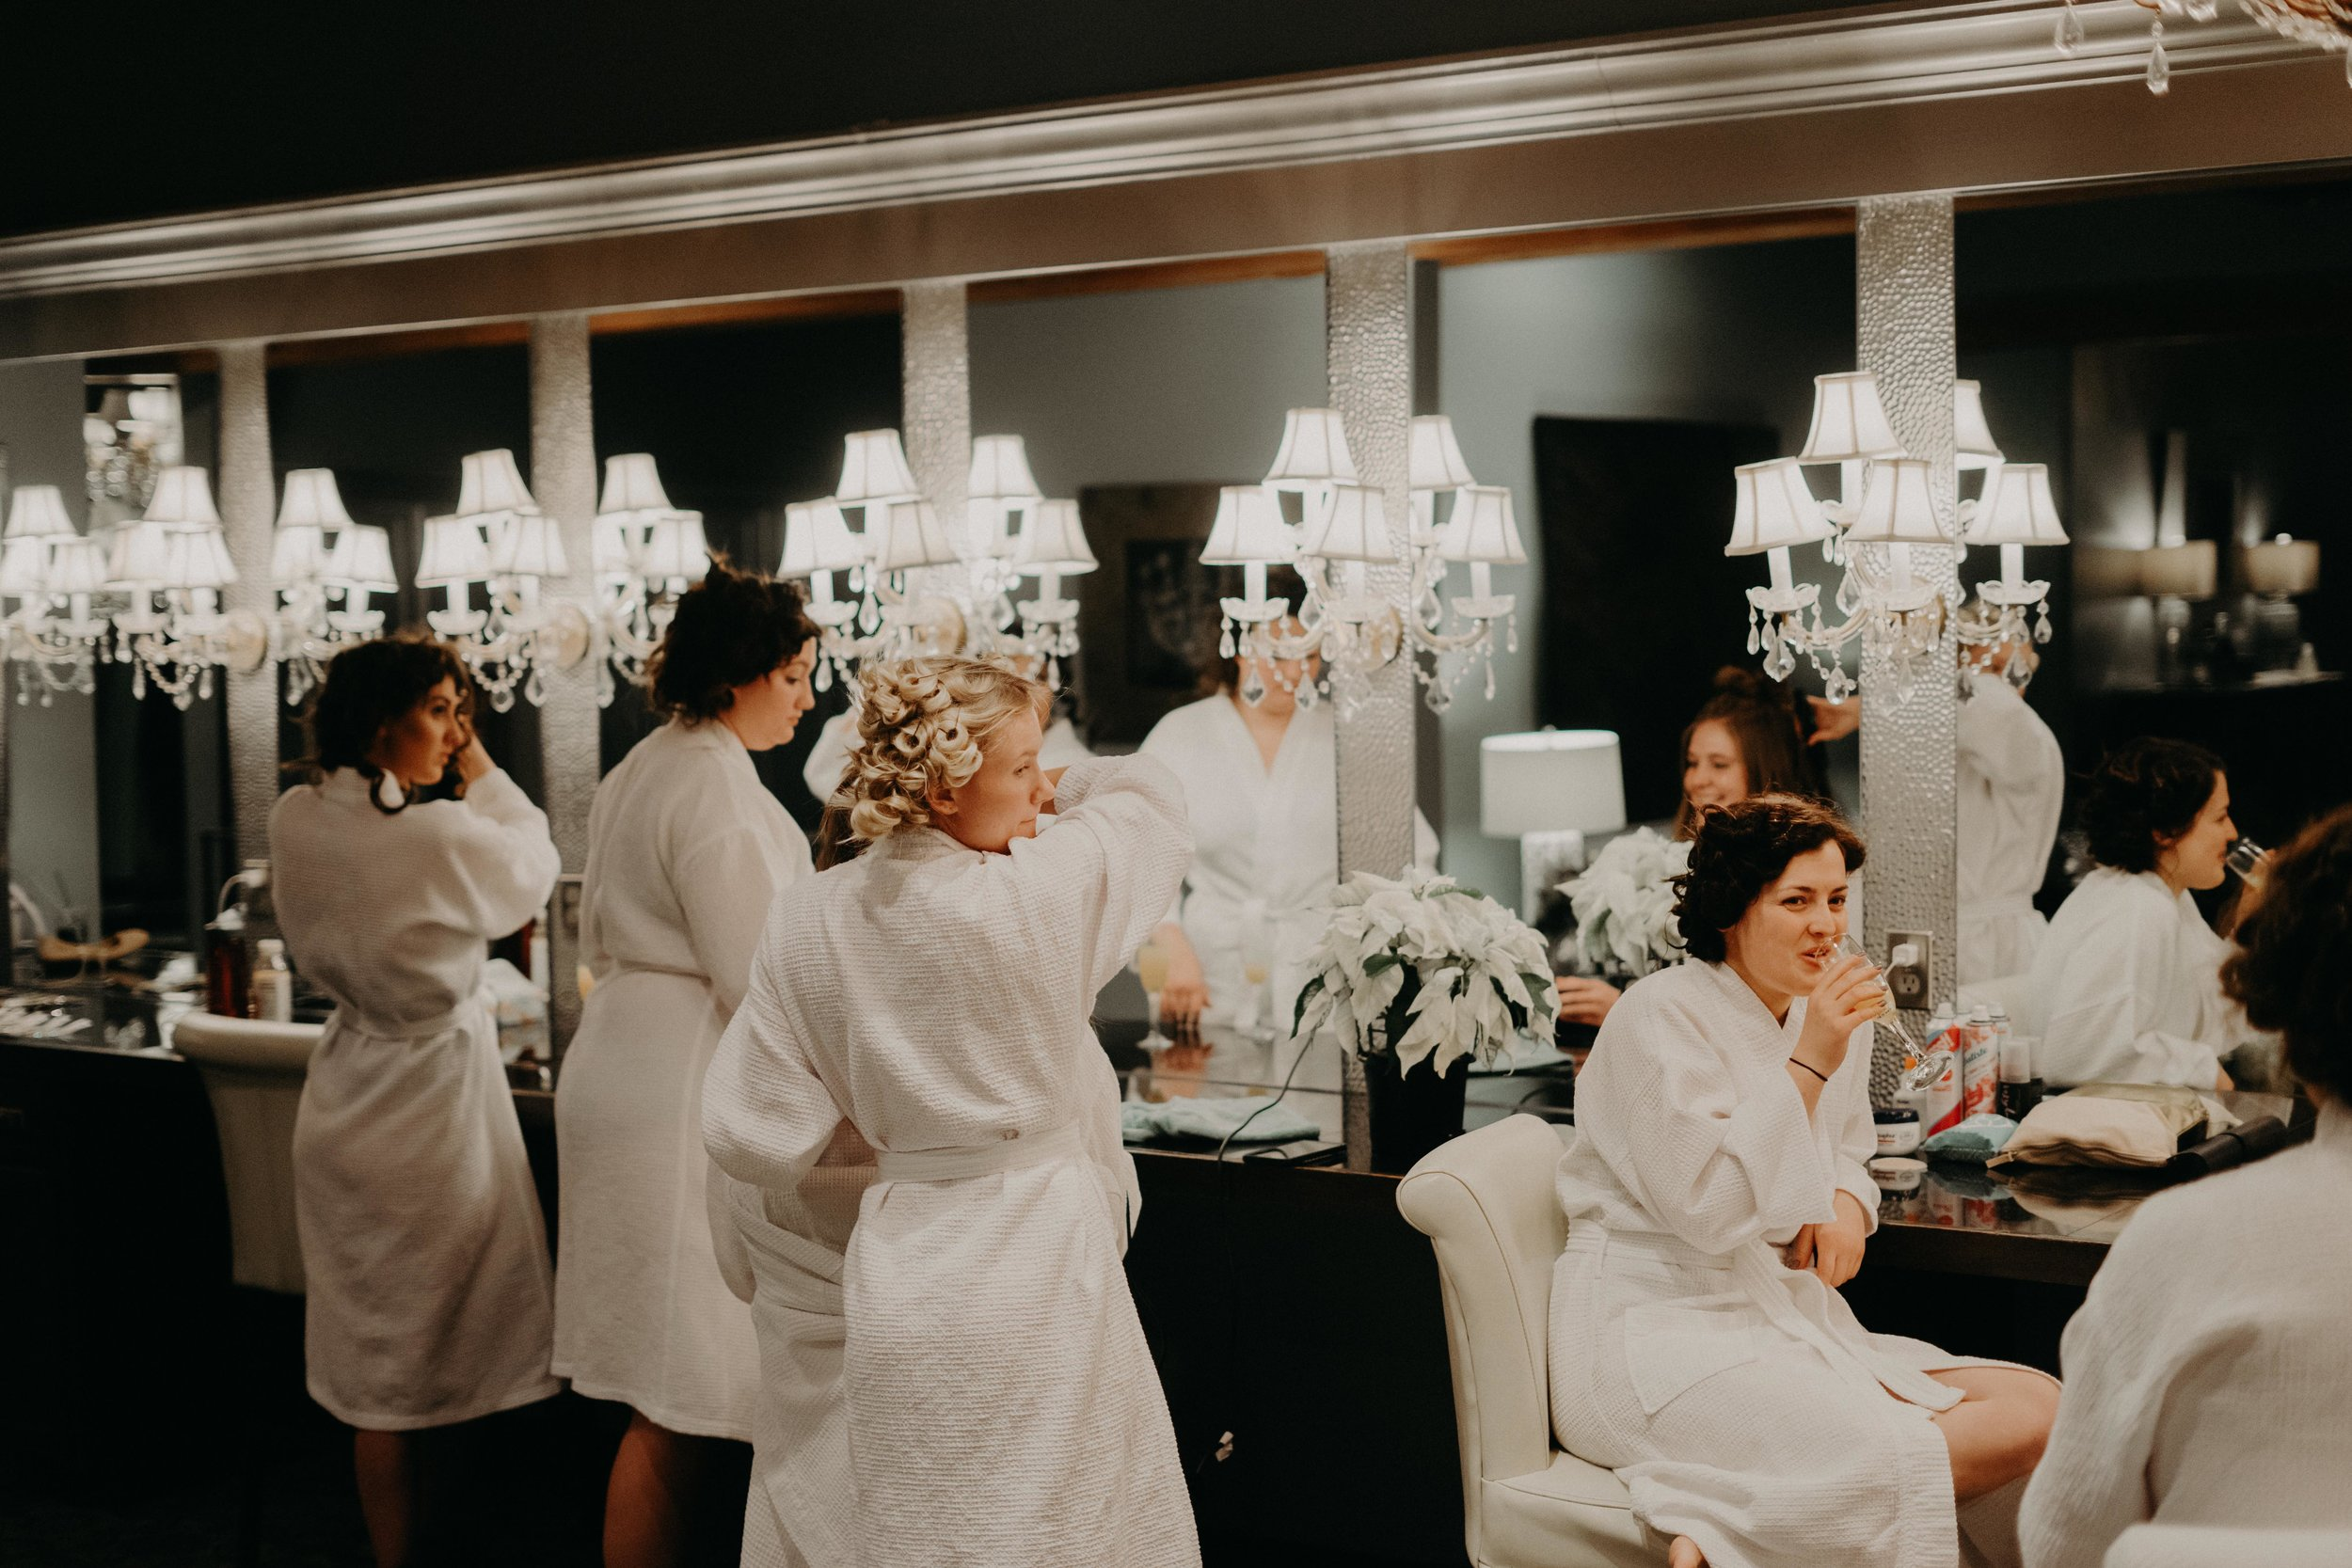 Wedding Services - Turning your big day into a movie.